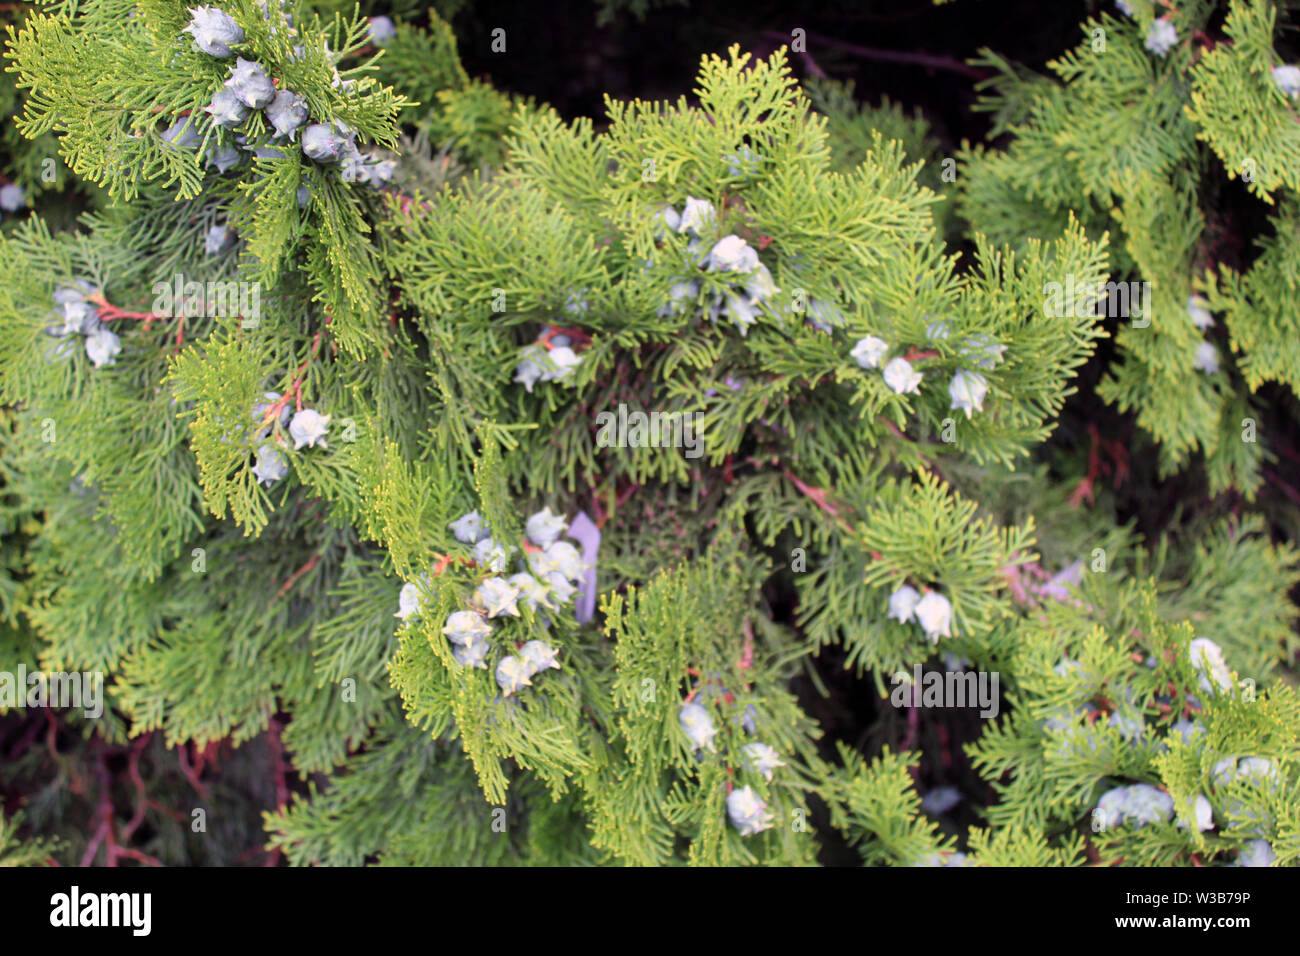 Cupressus leylandii or Leylan cypress fruits close up Stock Photo